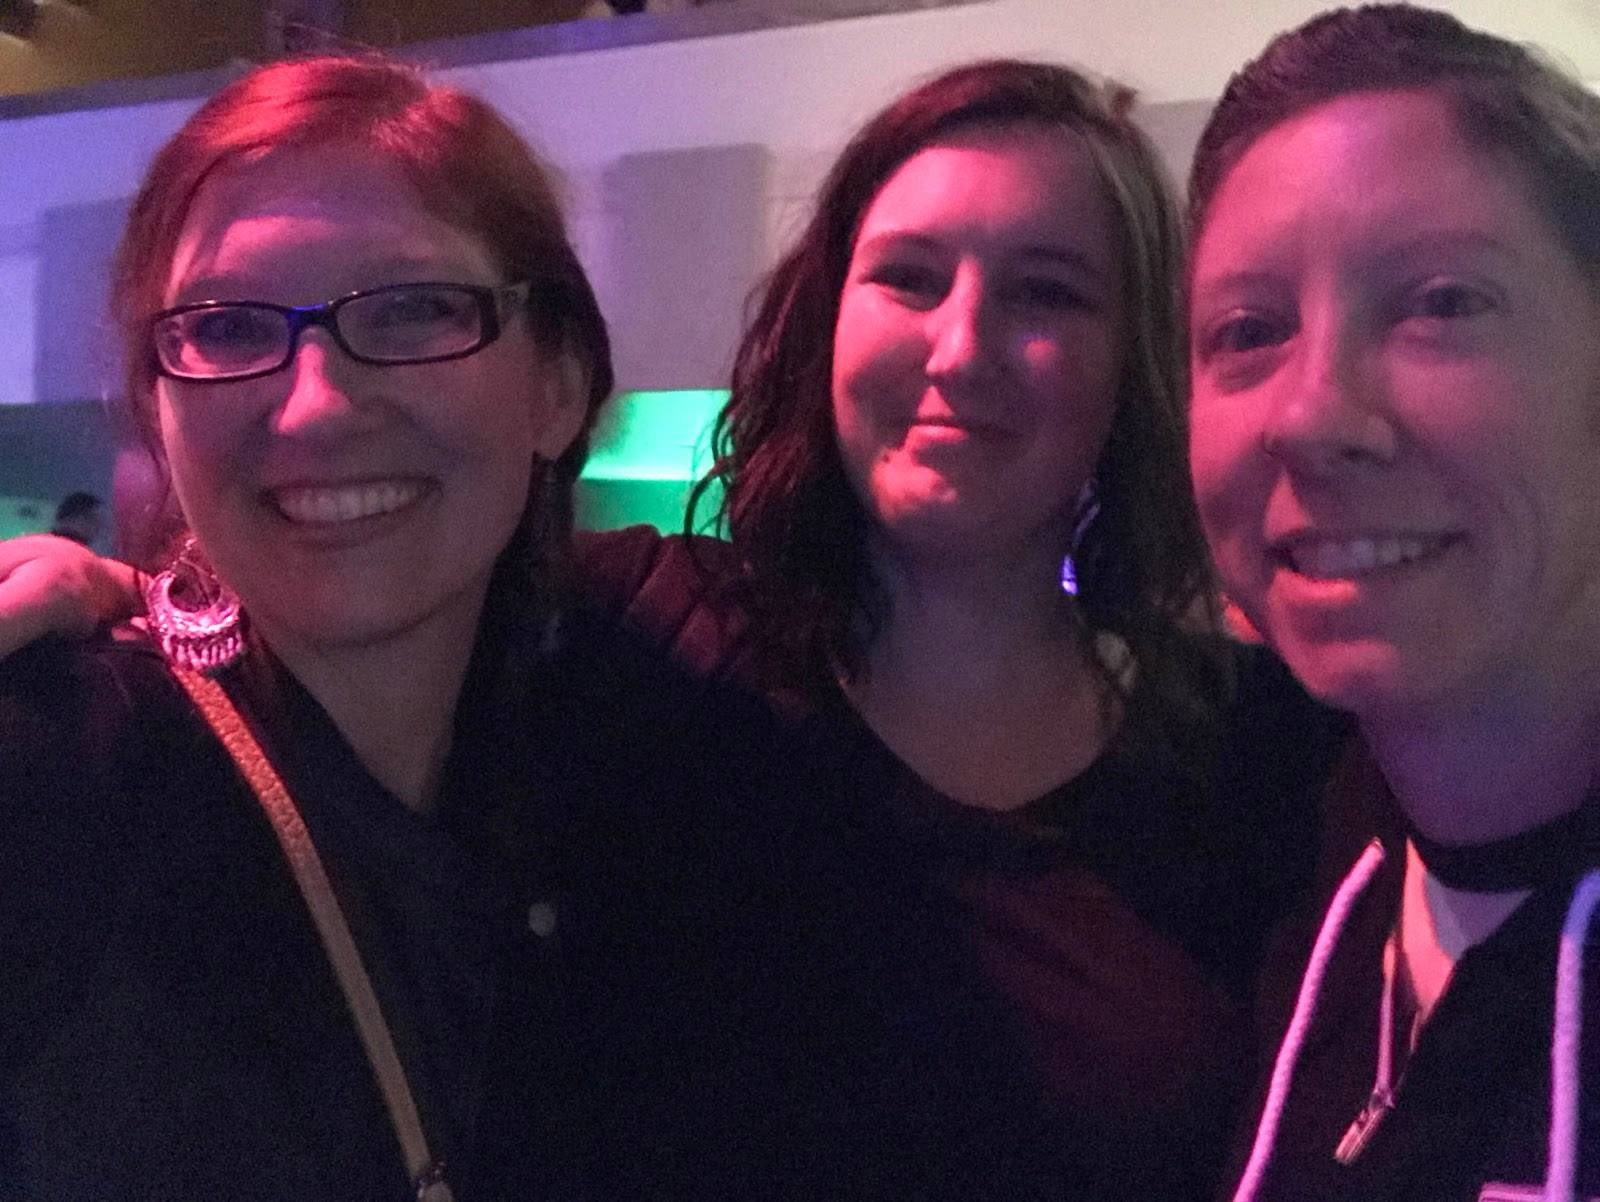 From left to right: Kelly Comer, Kim Moody, and Krissy Comer-Sullivan 2017